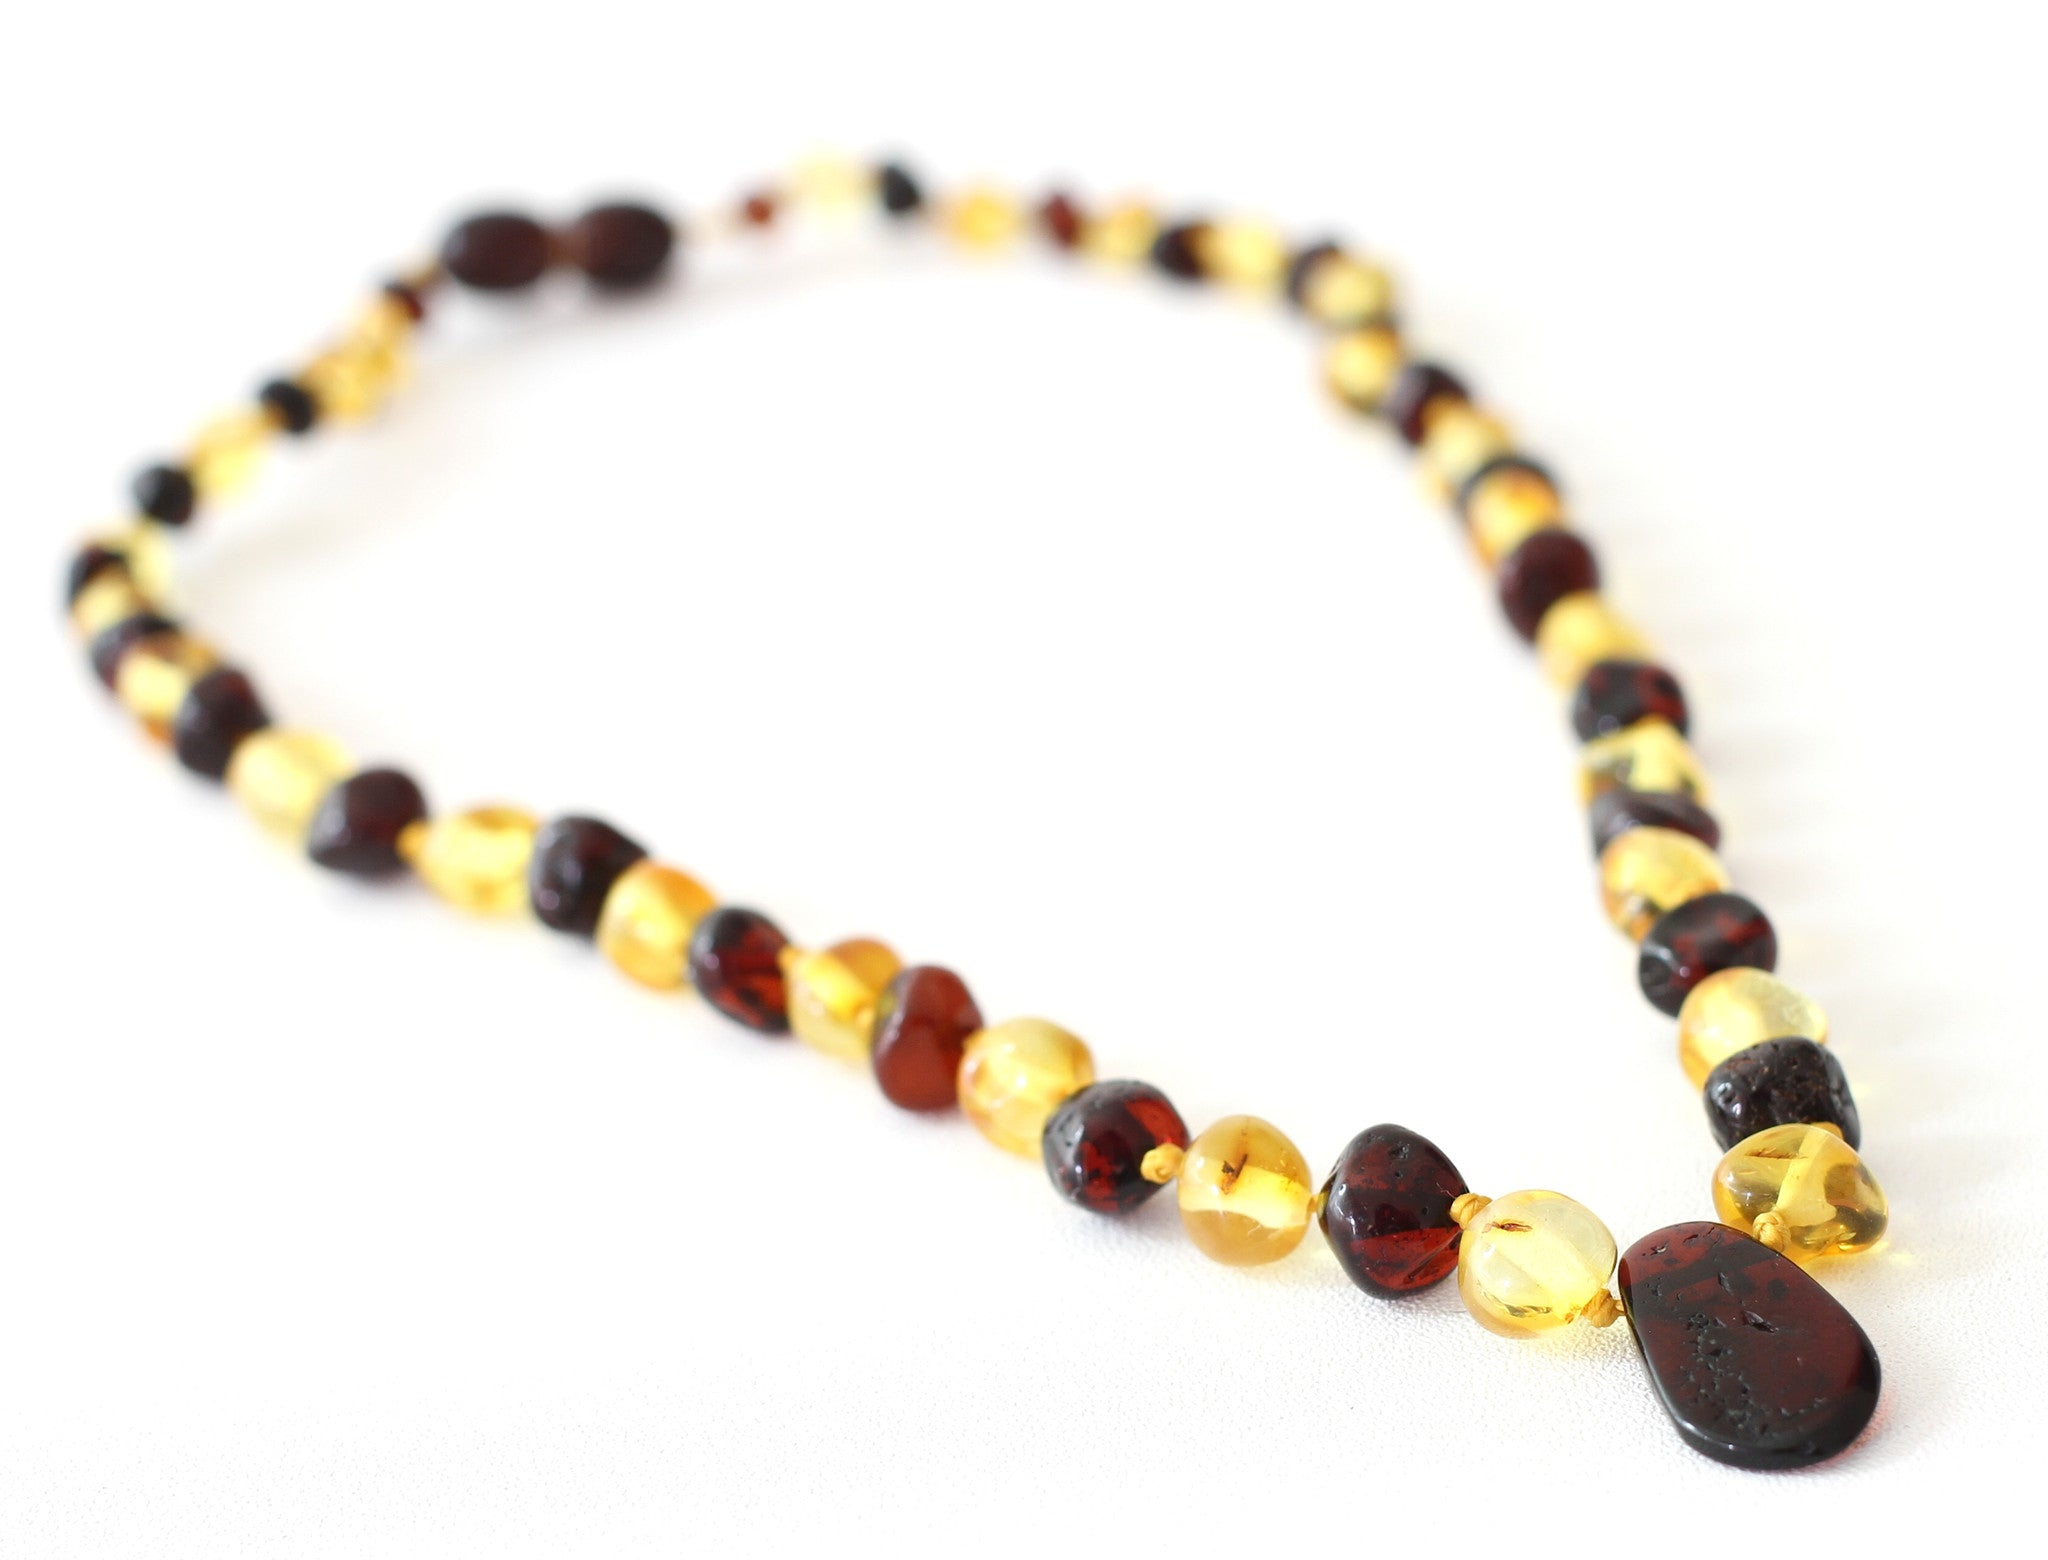 Baby Baltic Amber Necklace - Pendant